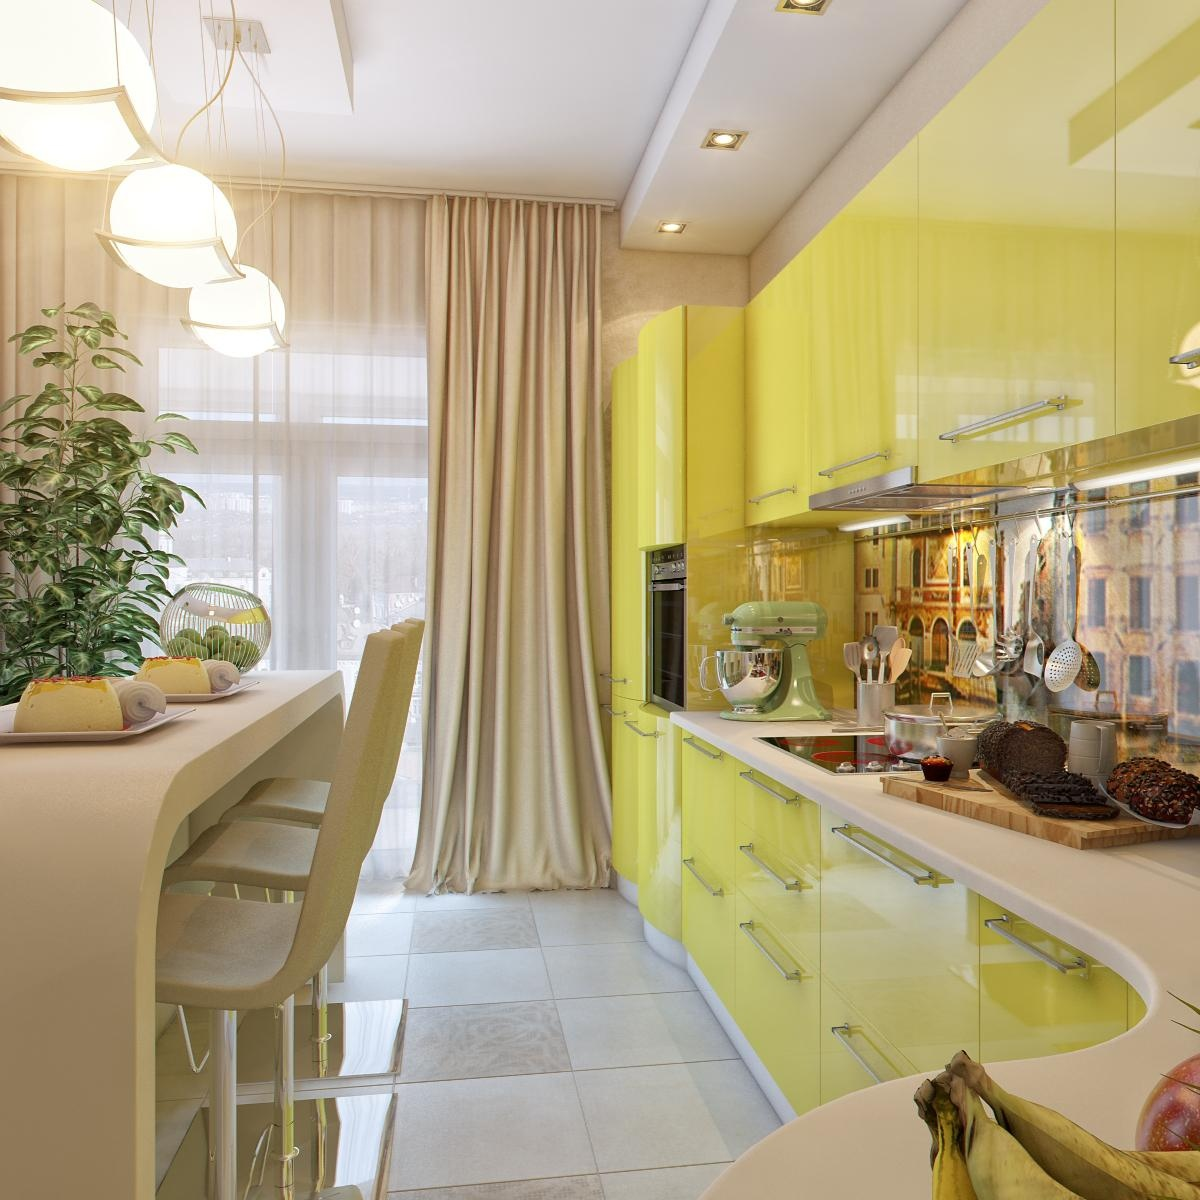 Yellow white kitchen dining space interior design ideas Kitchen design yellow and white